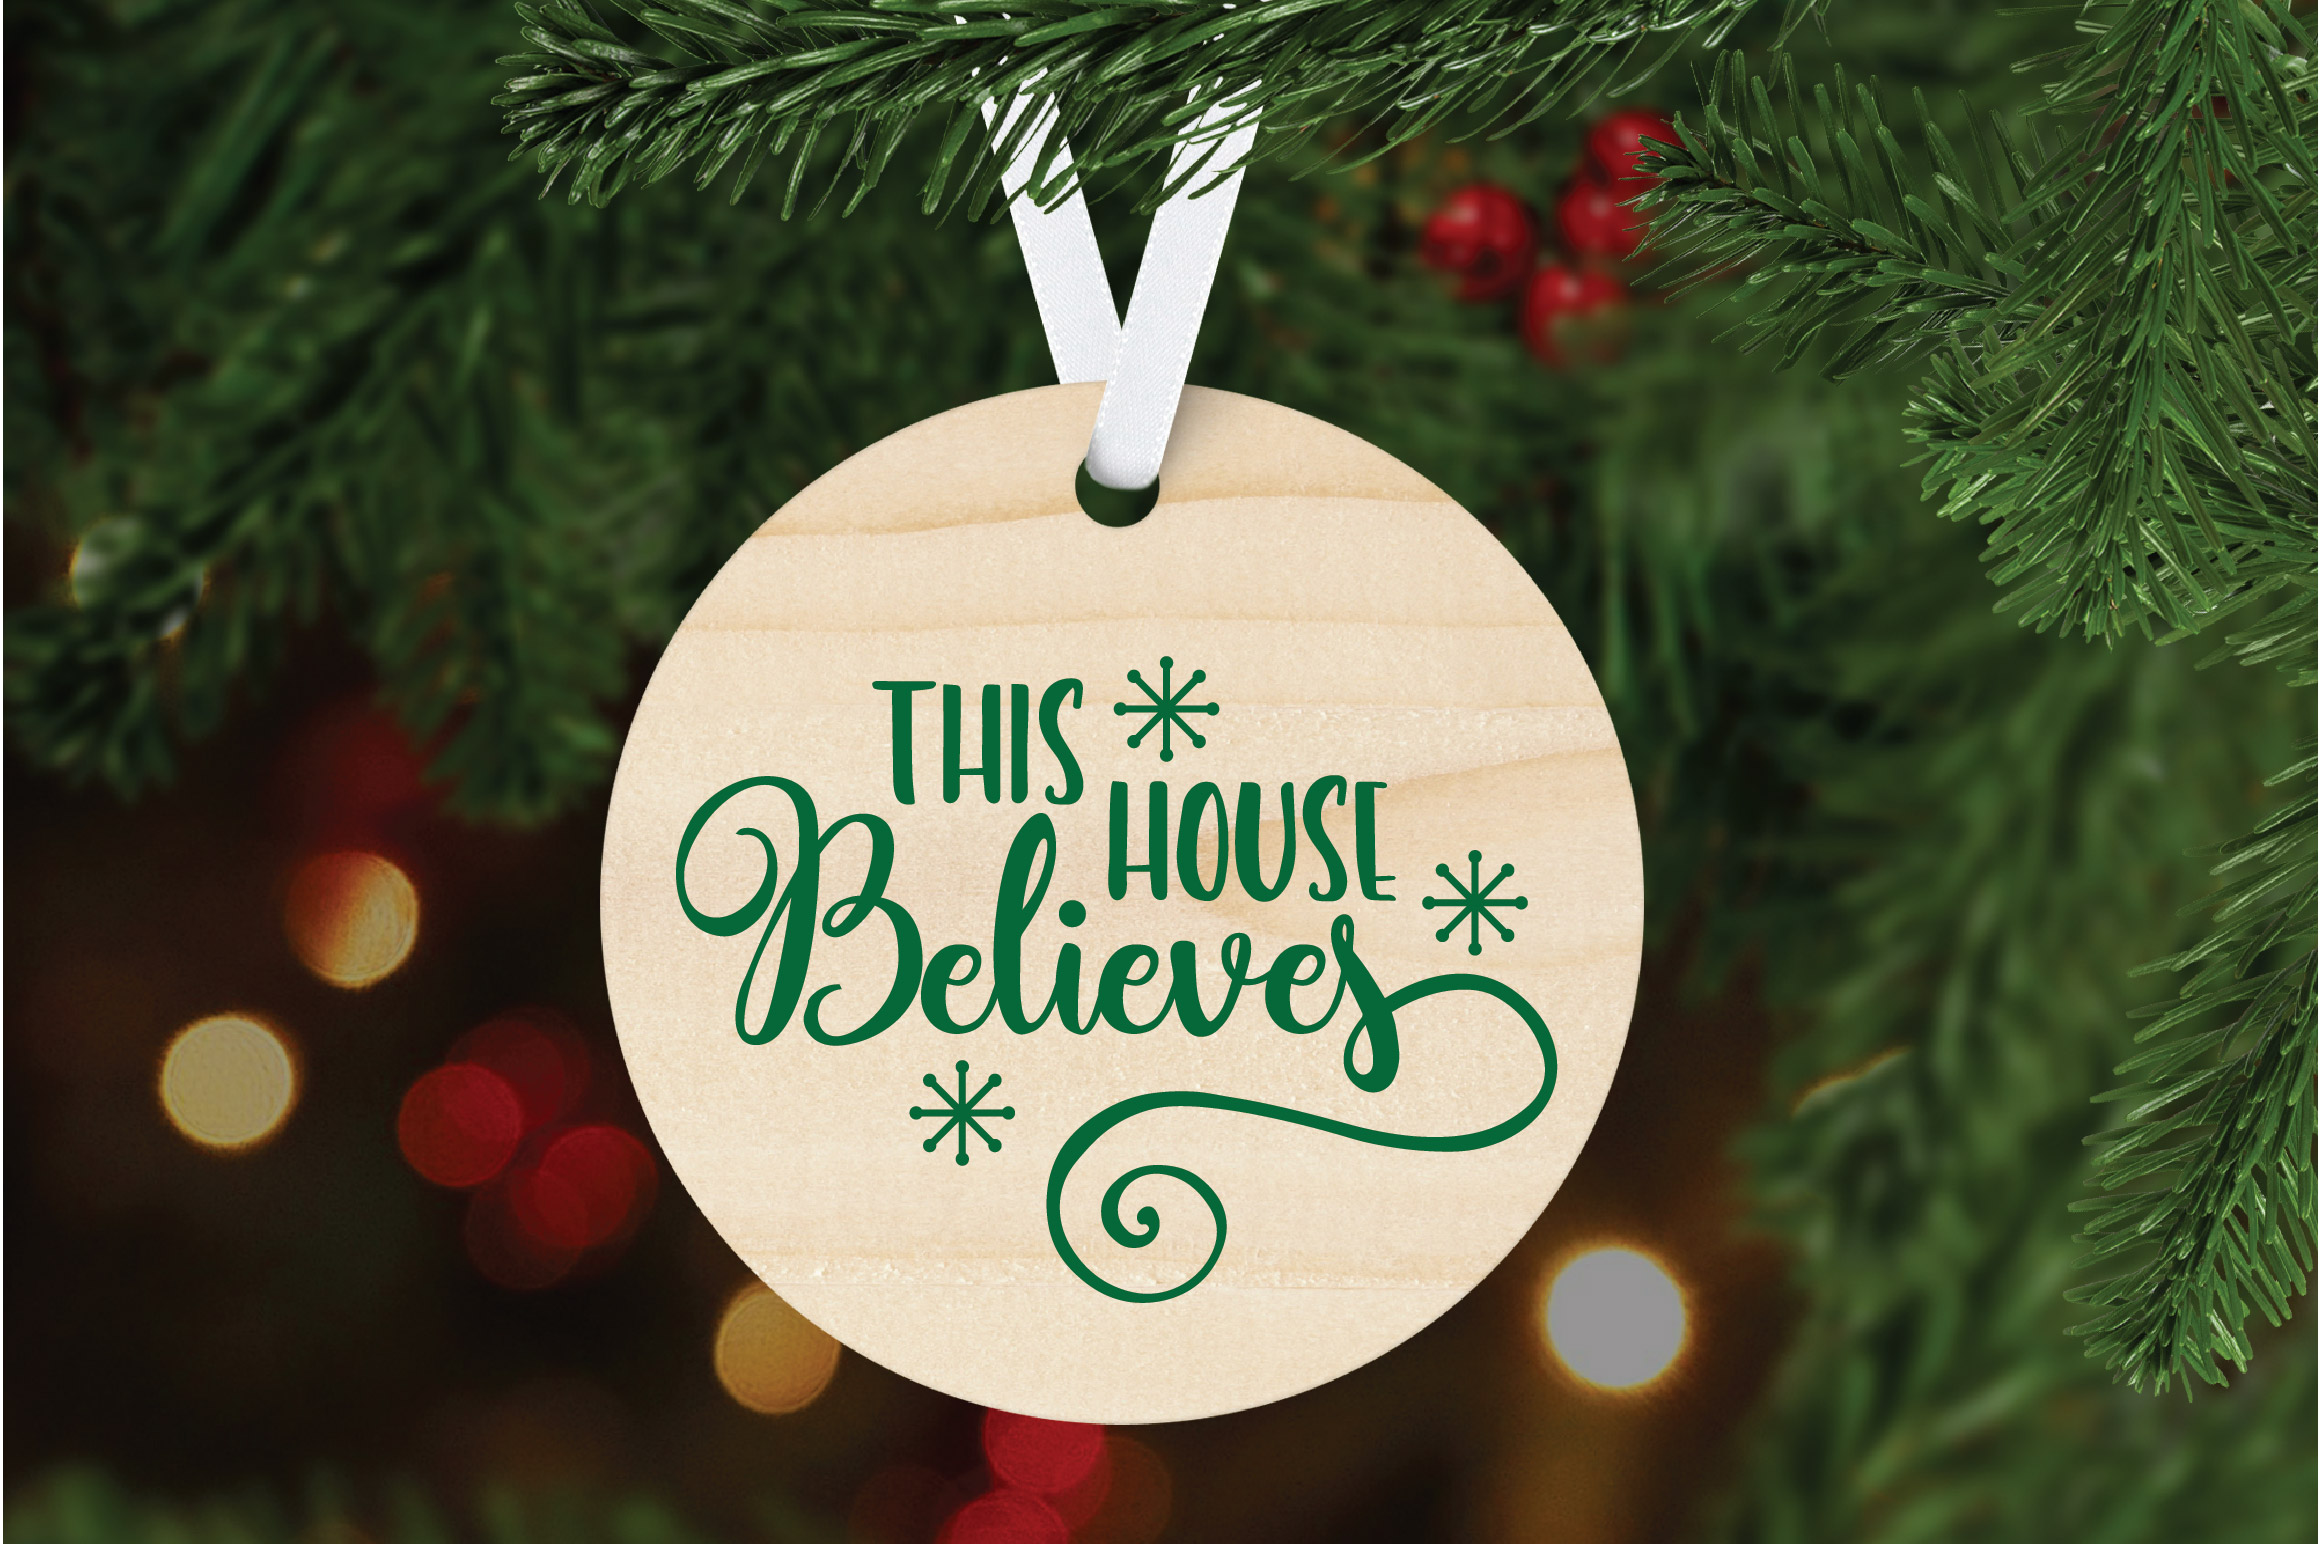 Christmas SVG Cut File - This House Believes SVG DXF PNG EPS example image 7